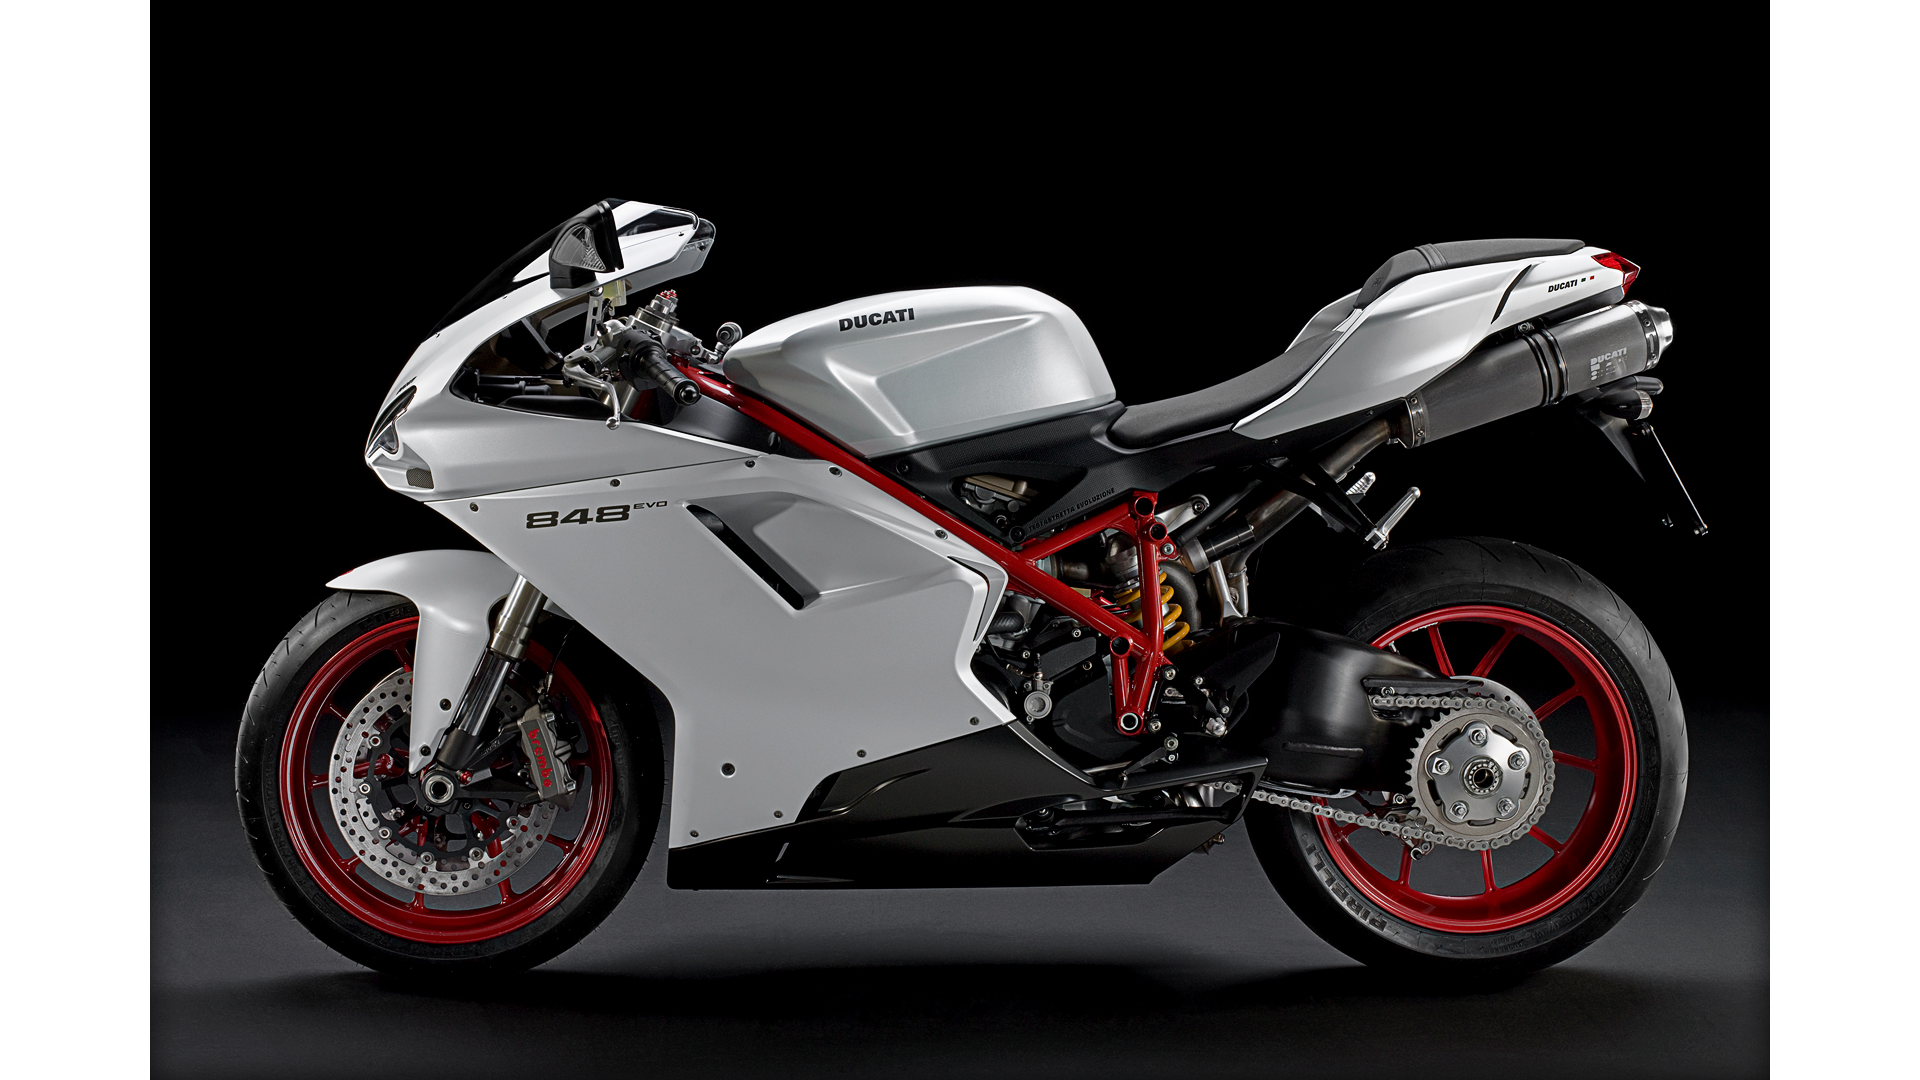 2012 Ducati Superbike 848 EVO Review - Top Speed